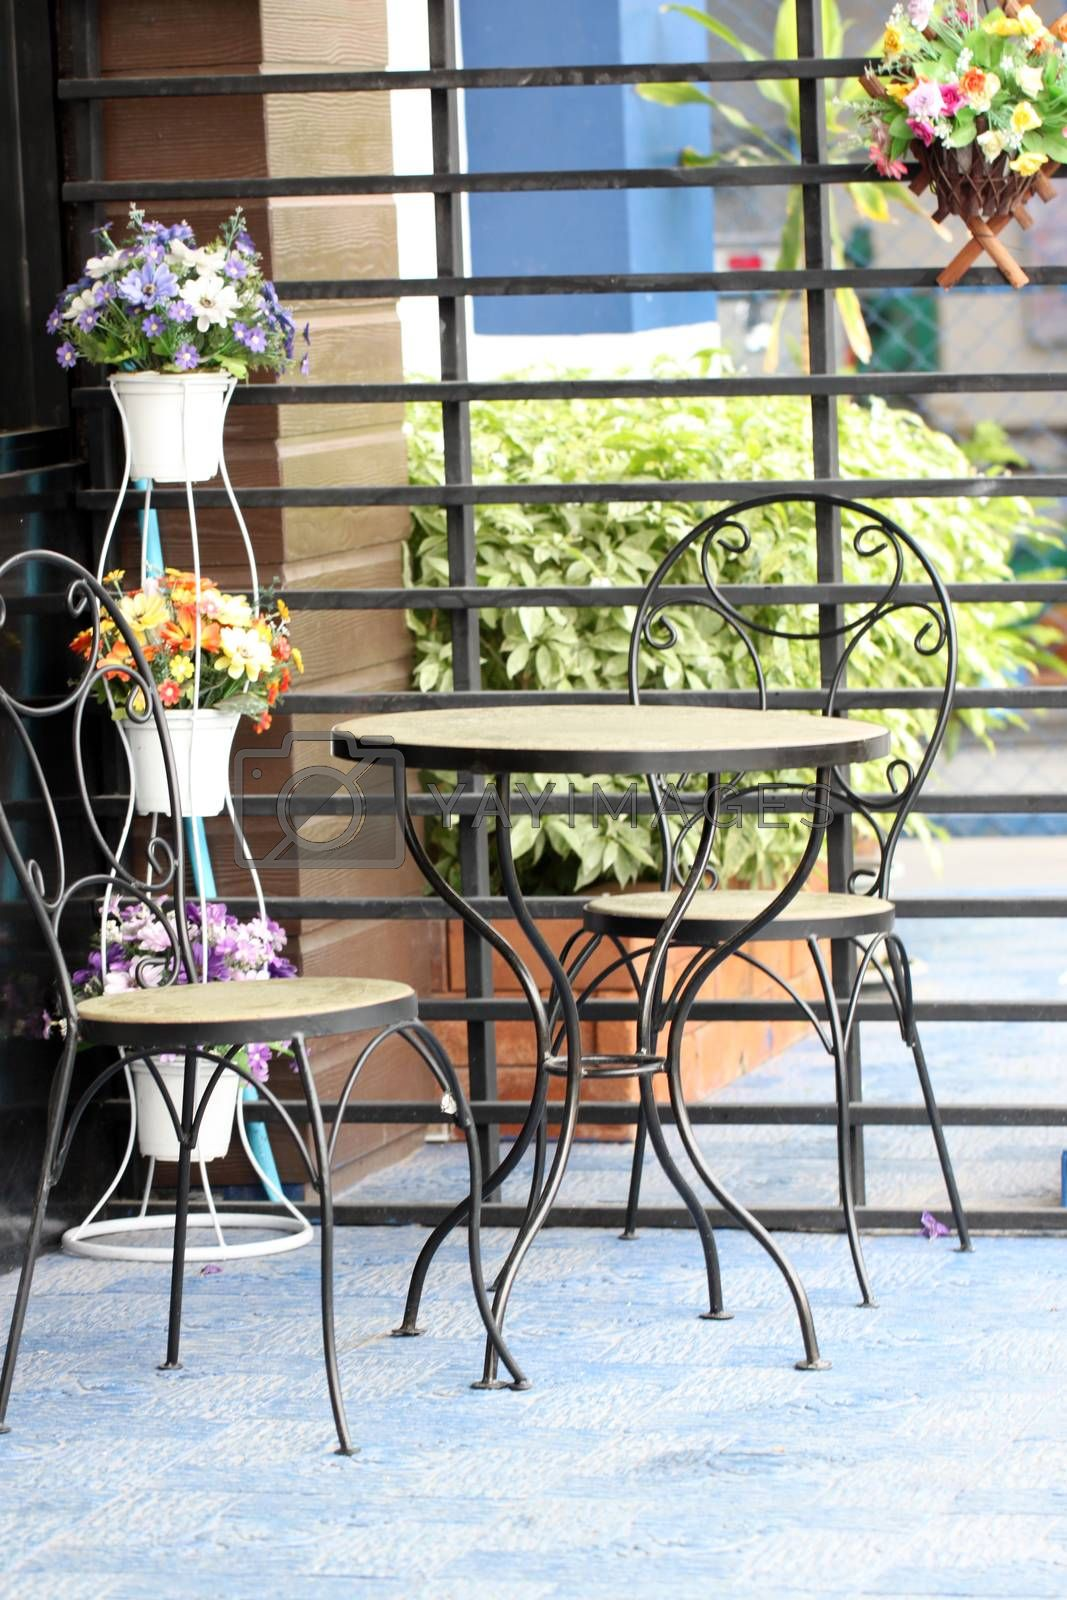 The table decorated with colorful flower pots in the corner. by meepoohyaphoto